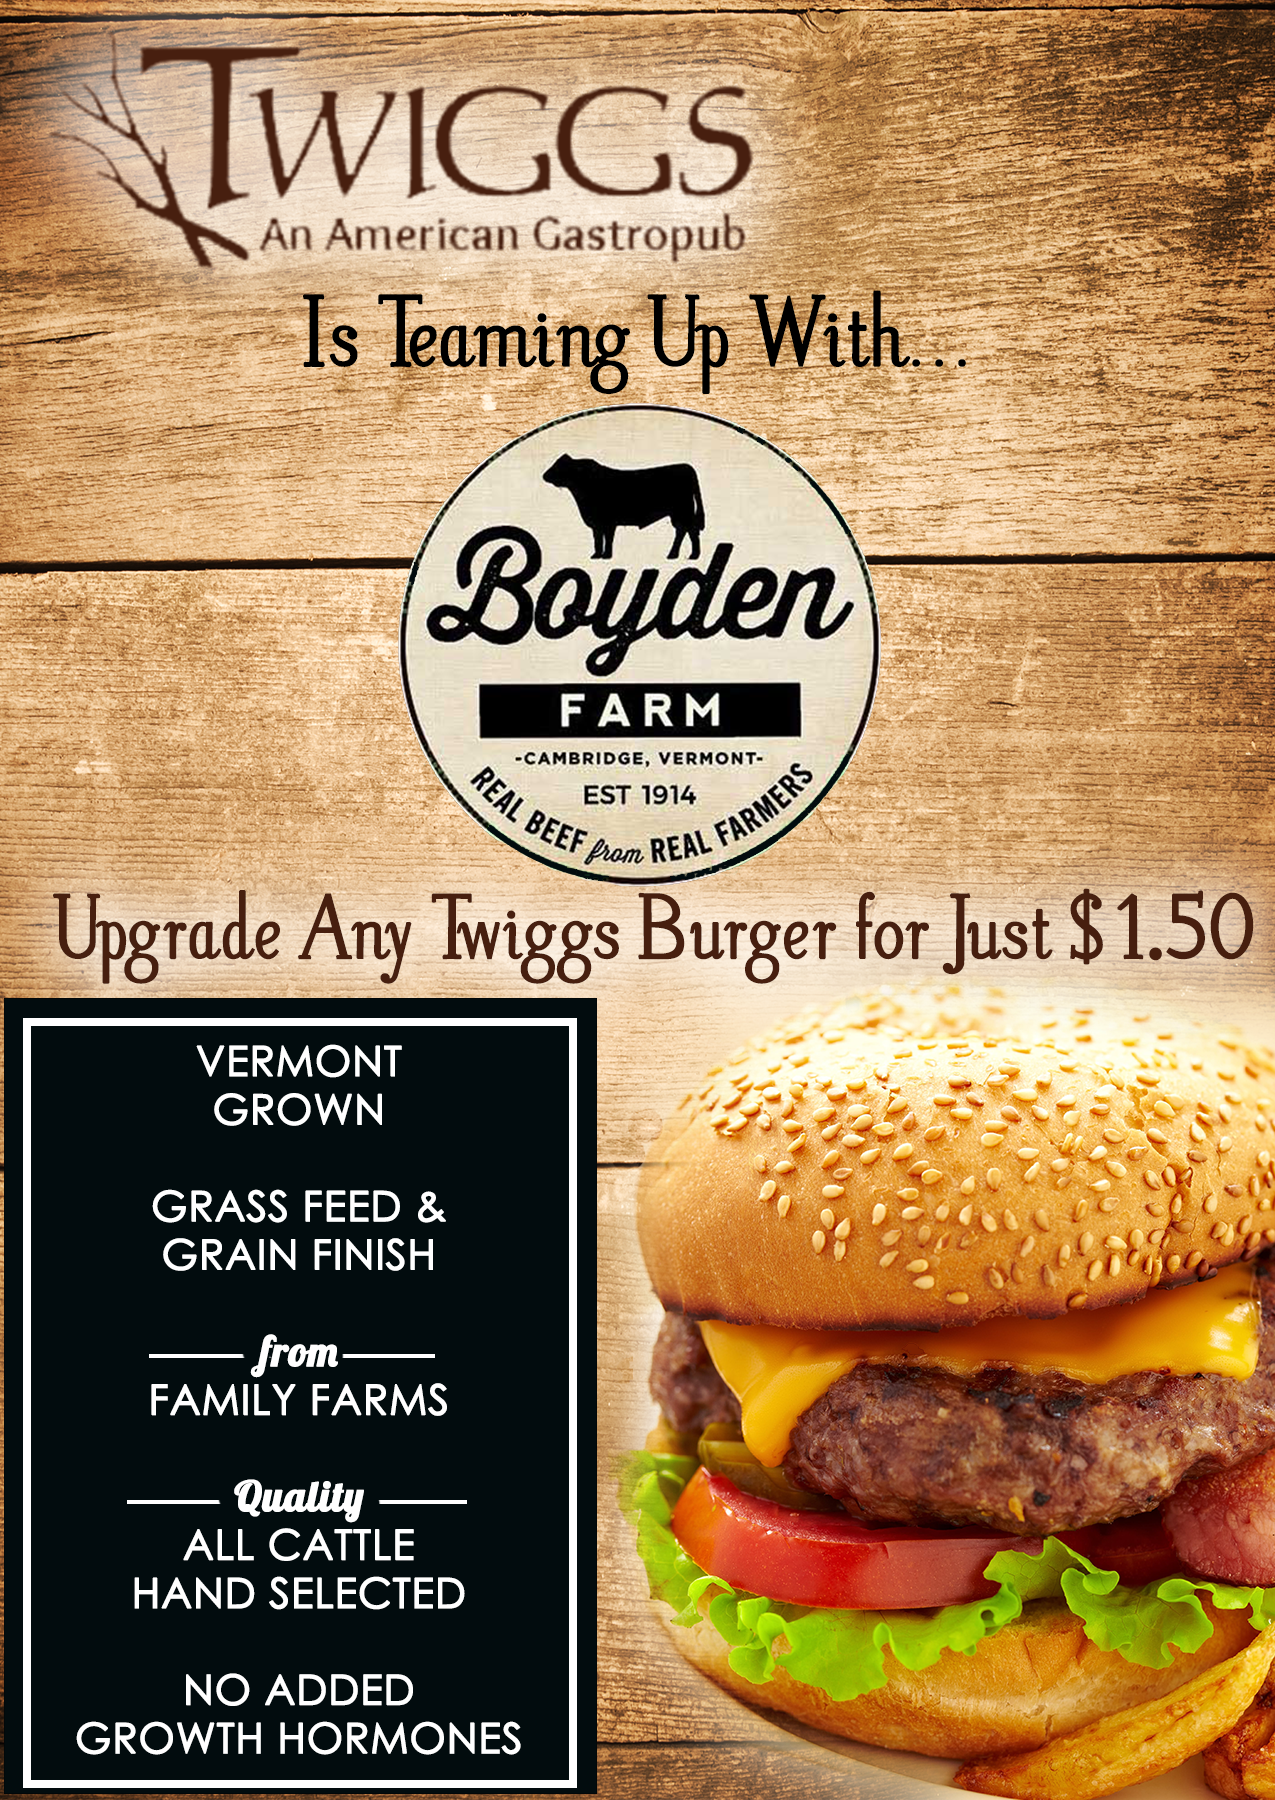 We're teaming up with Boyden Farm! Upgrade any Twiggs Burger for Just $1.50